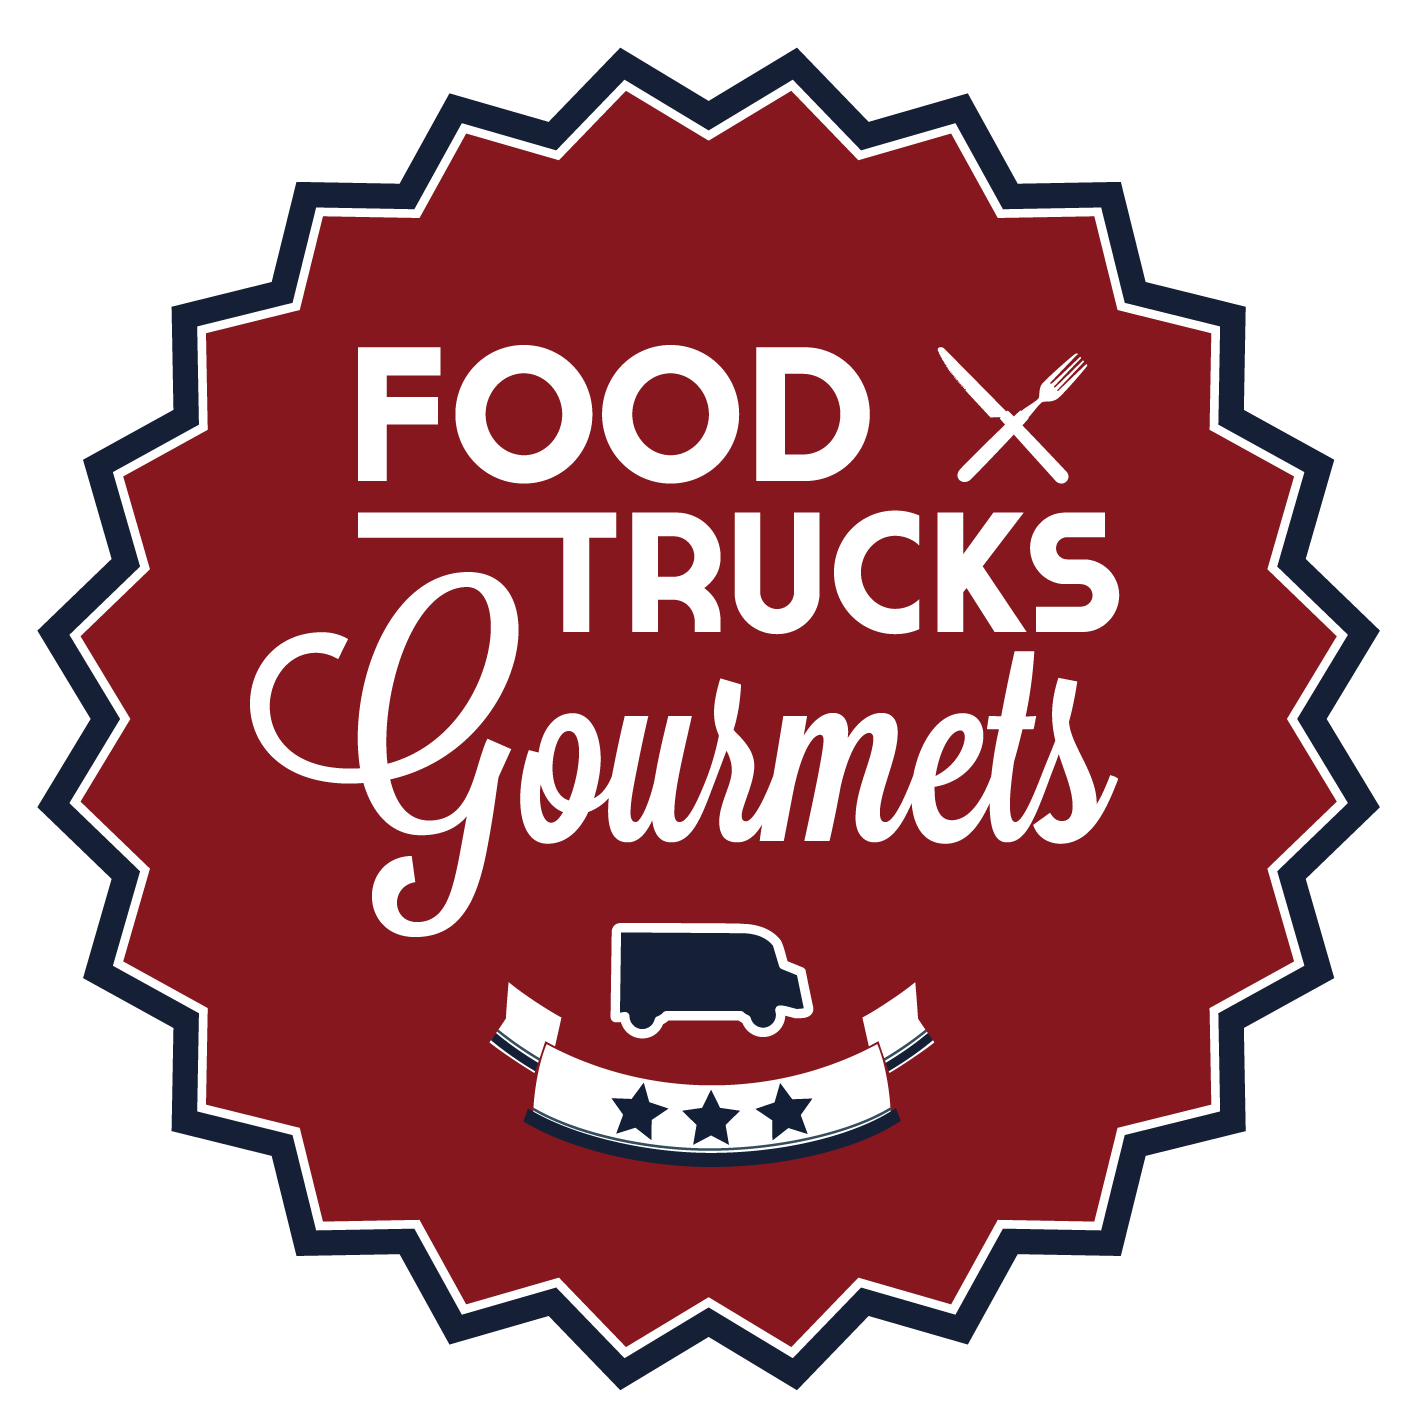 Food Trucks Gourmets